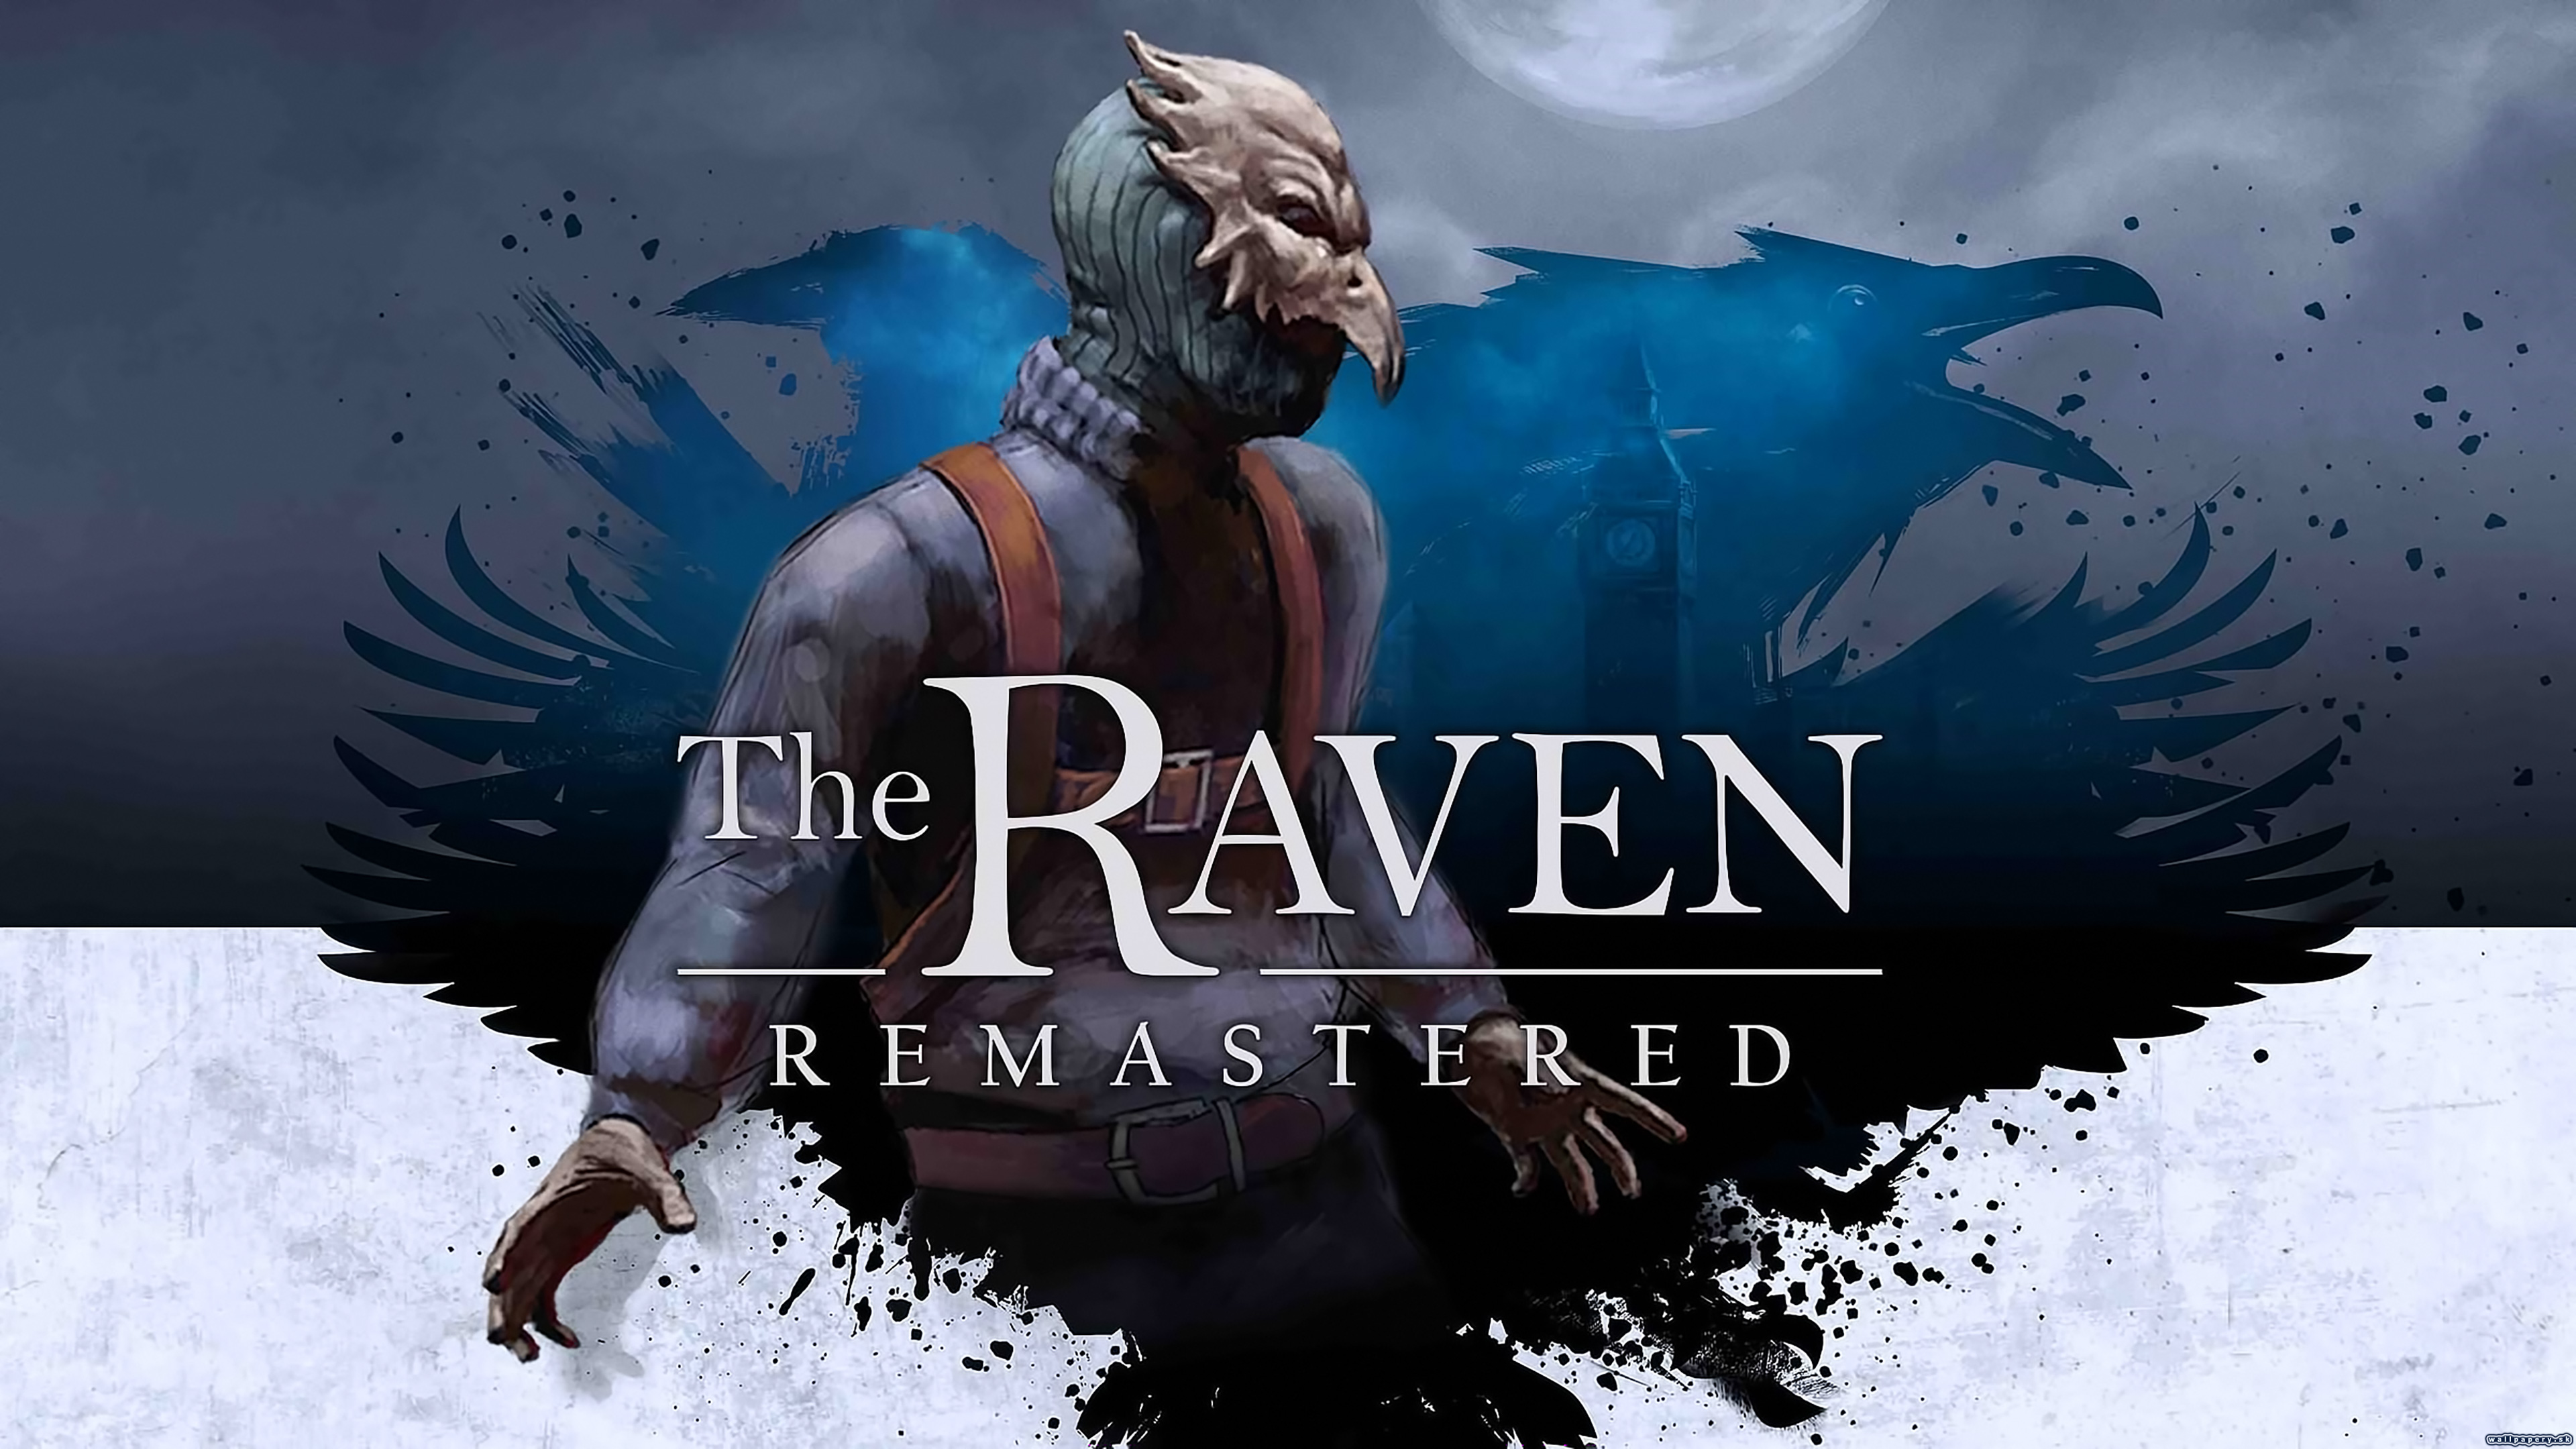 The Raven Remastered - wallpaper 1